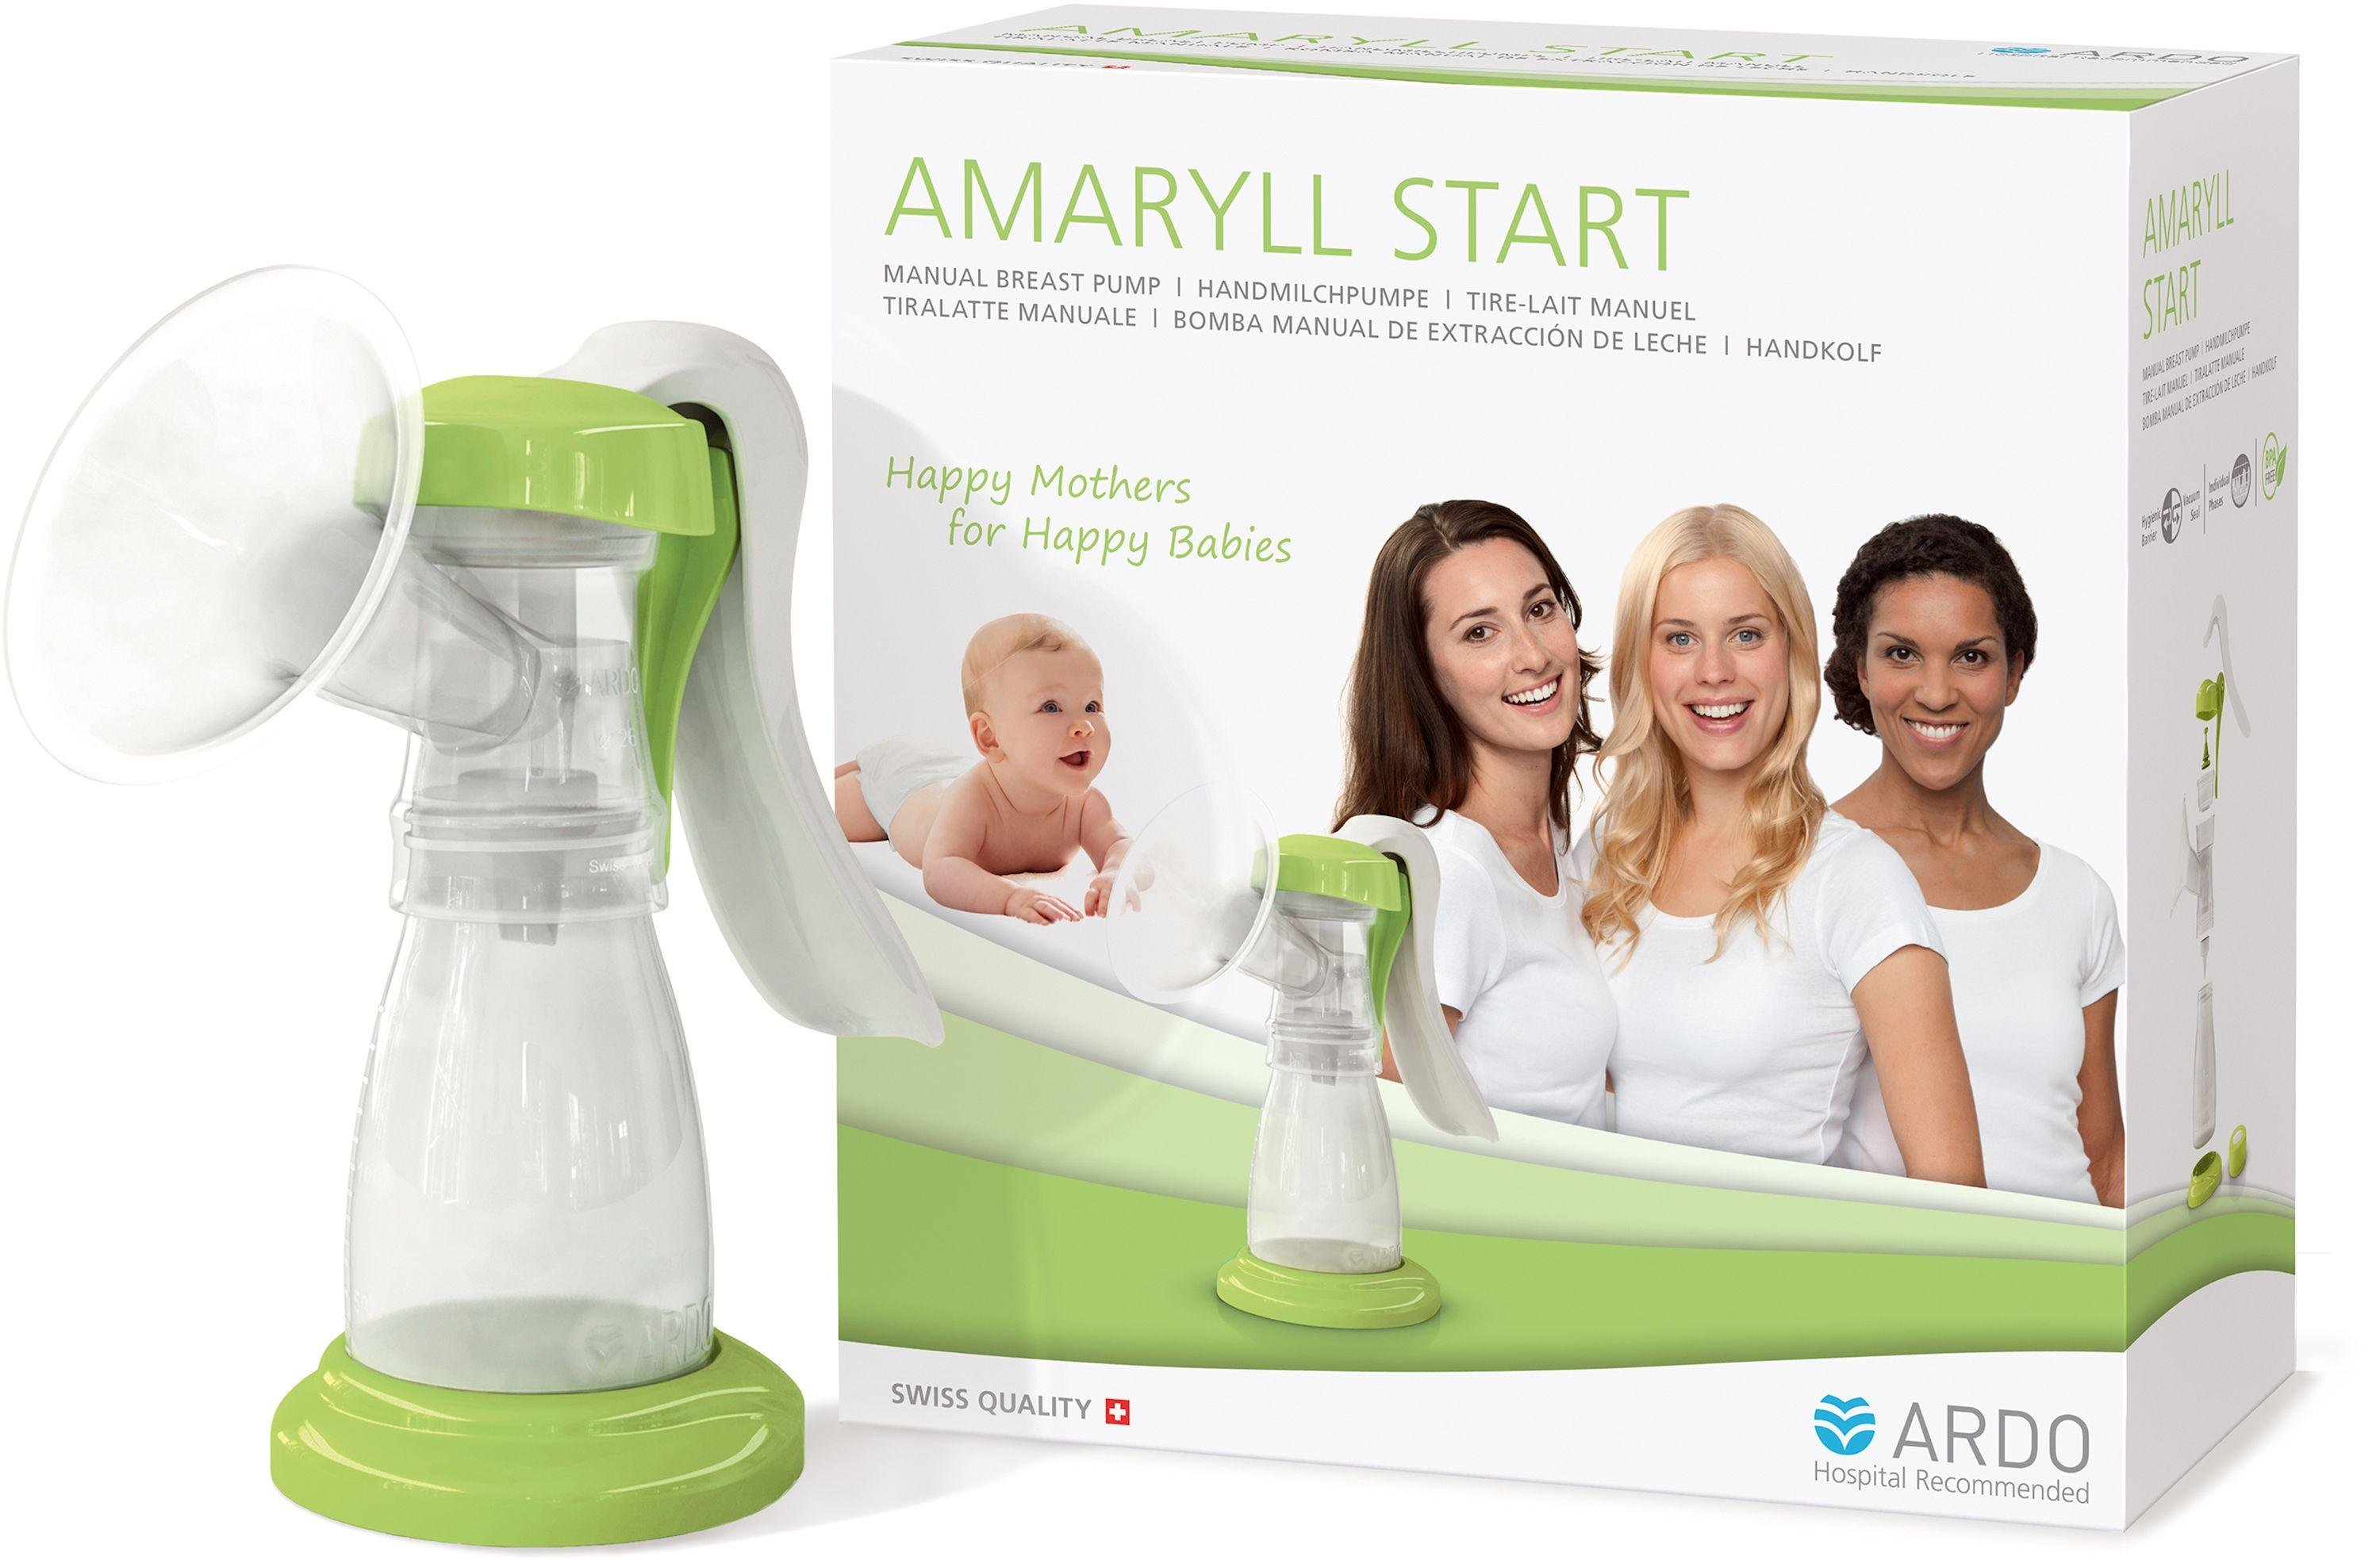 Image of Ardo Amaryll Start - Manual Breast Pump